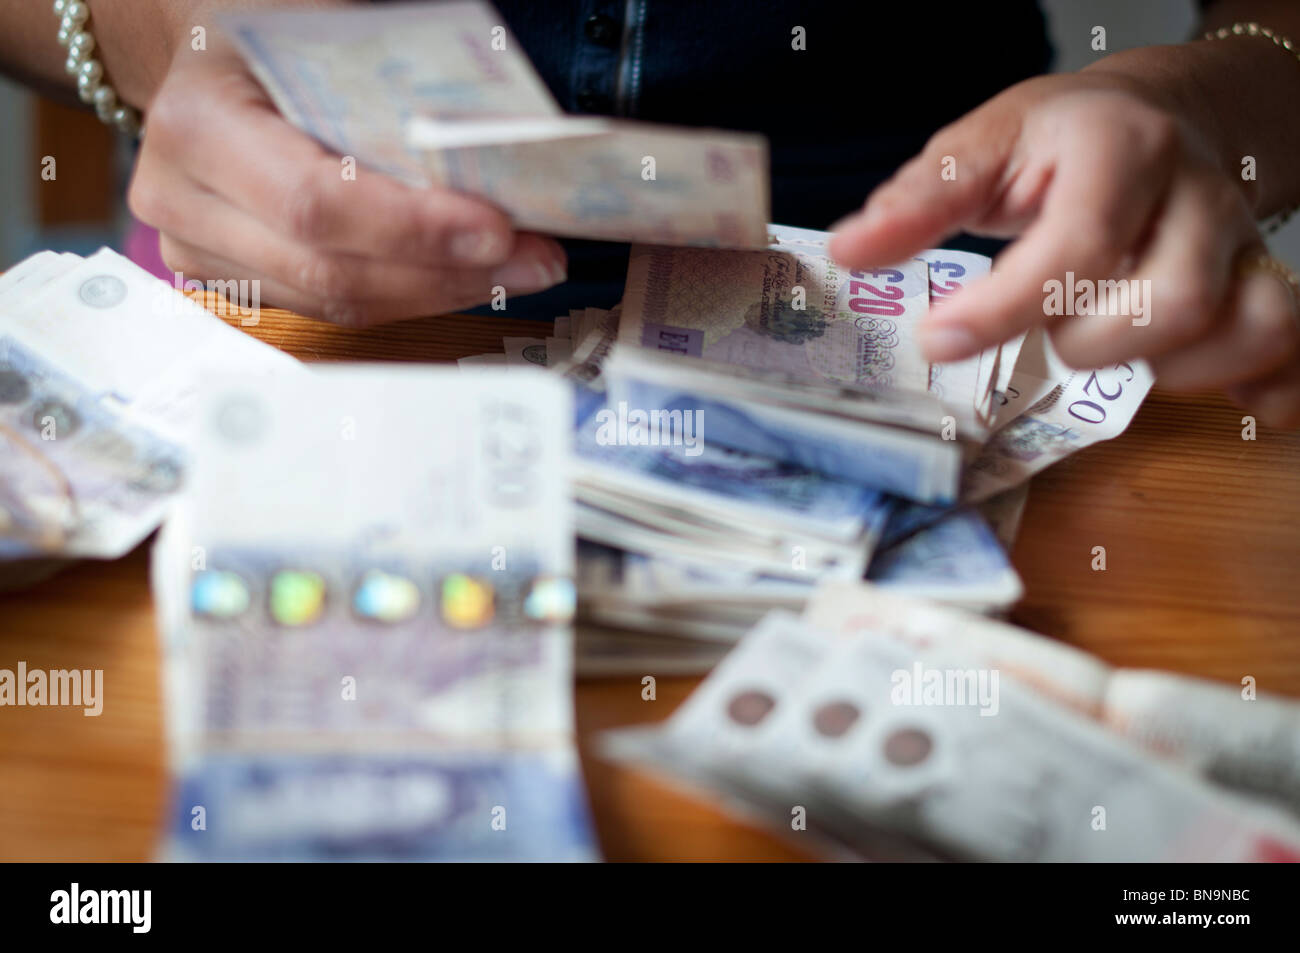 Person counting cash-close-up - Stock Image